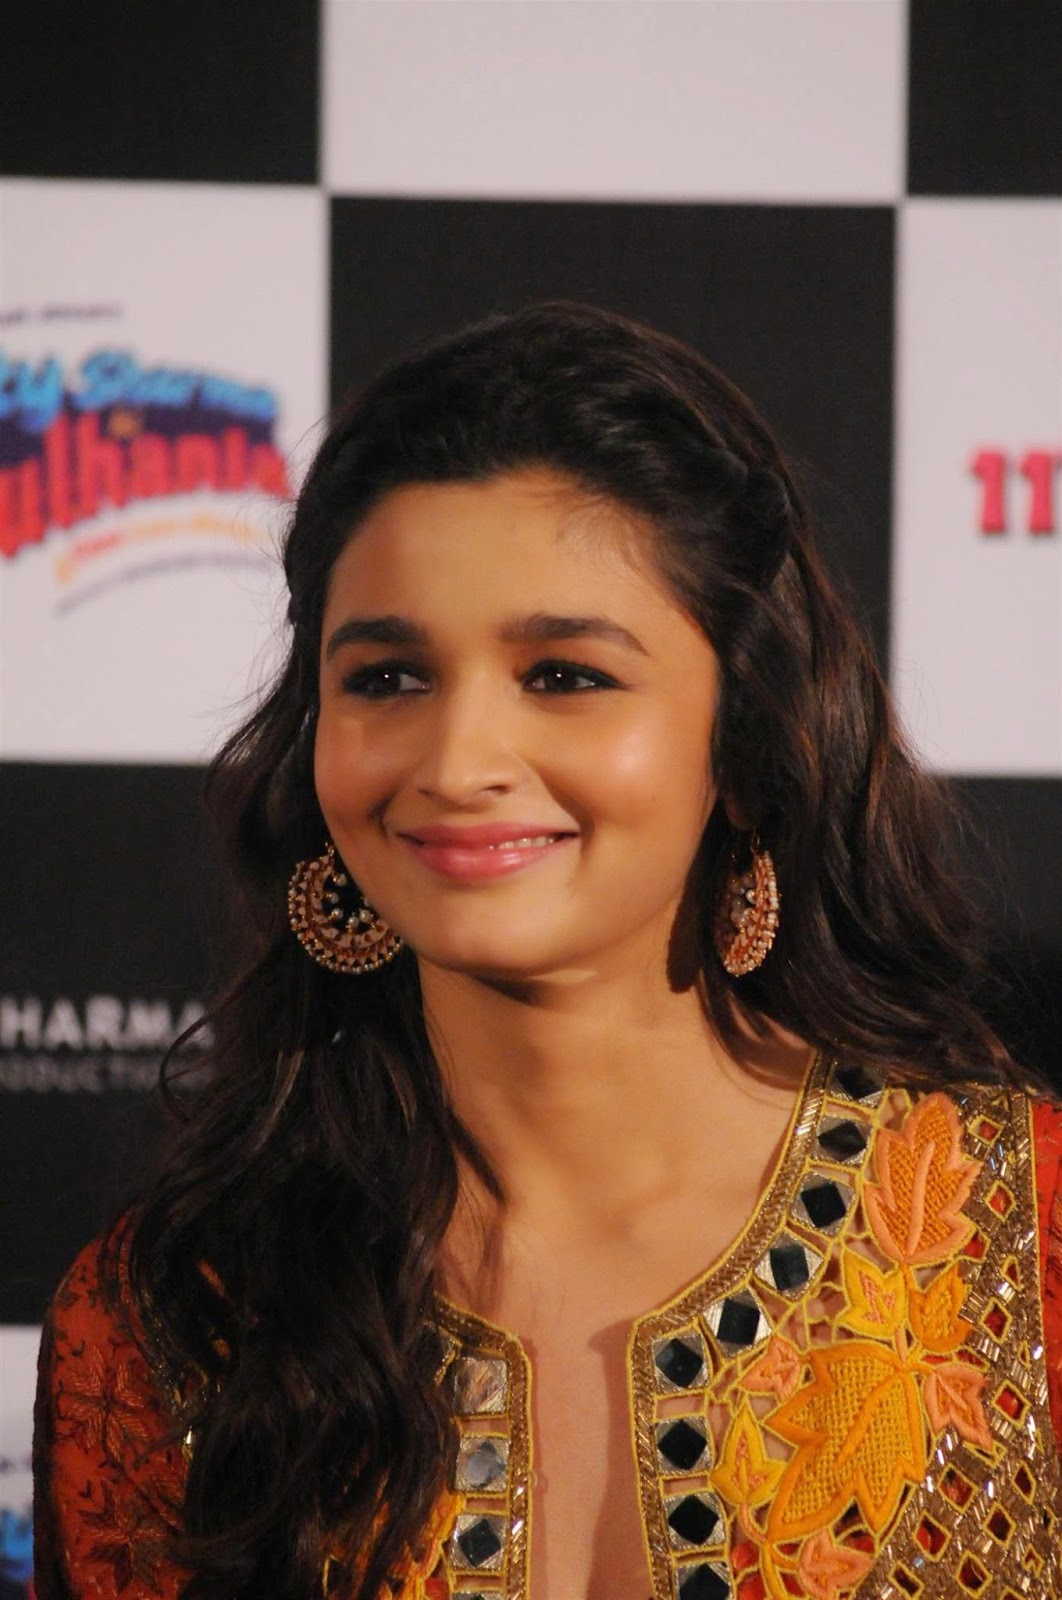 High Quality Bollywood Celebrity Pictures Alia Bhatt -3123